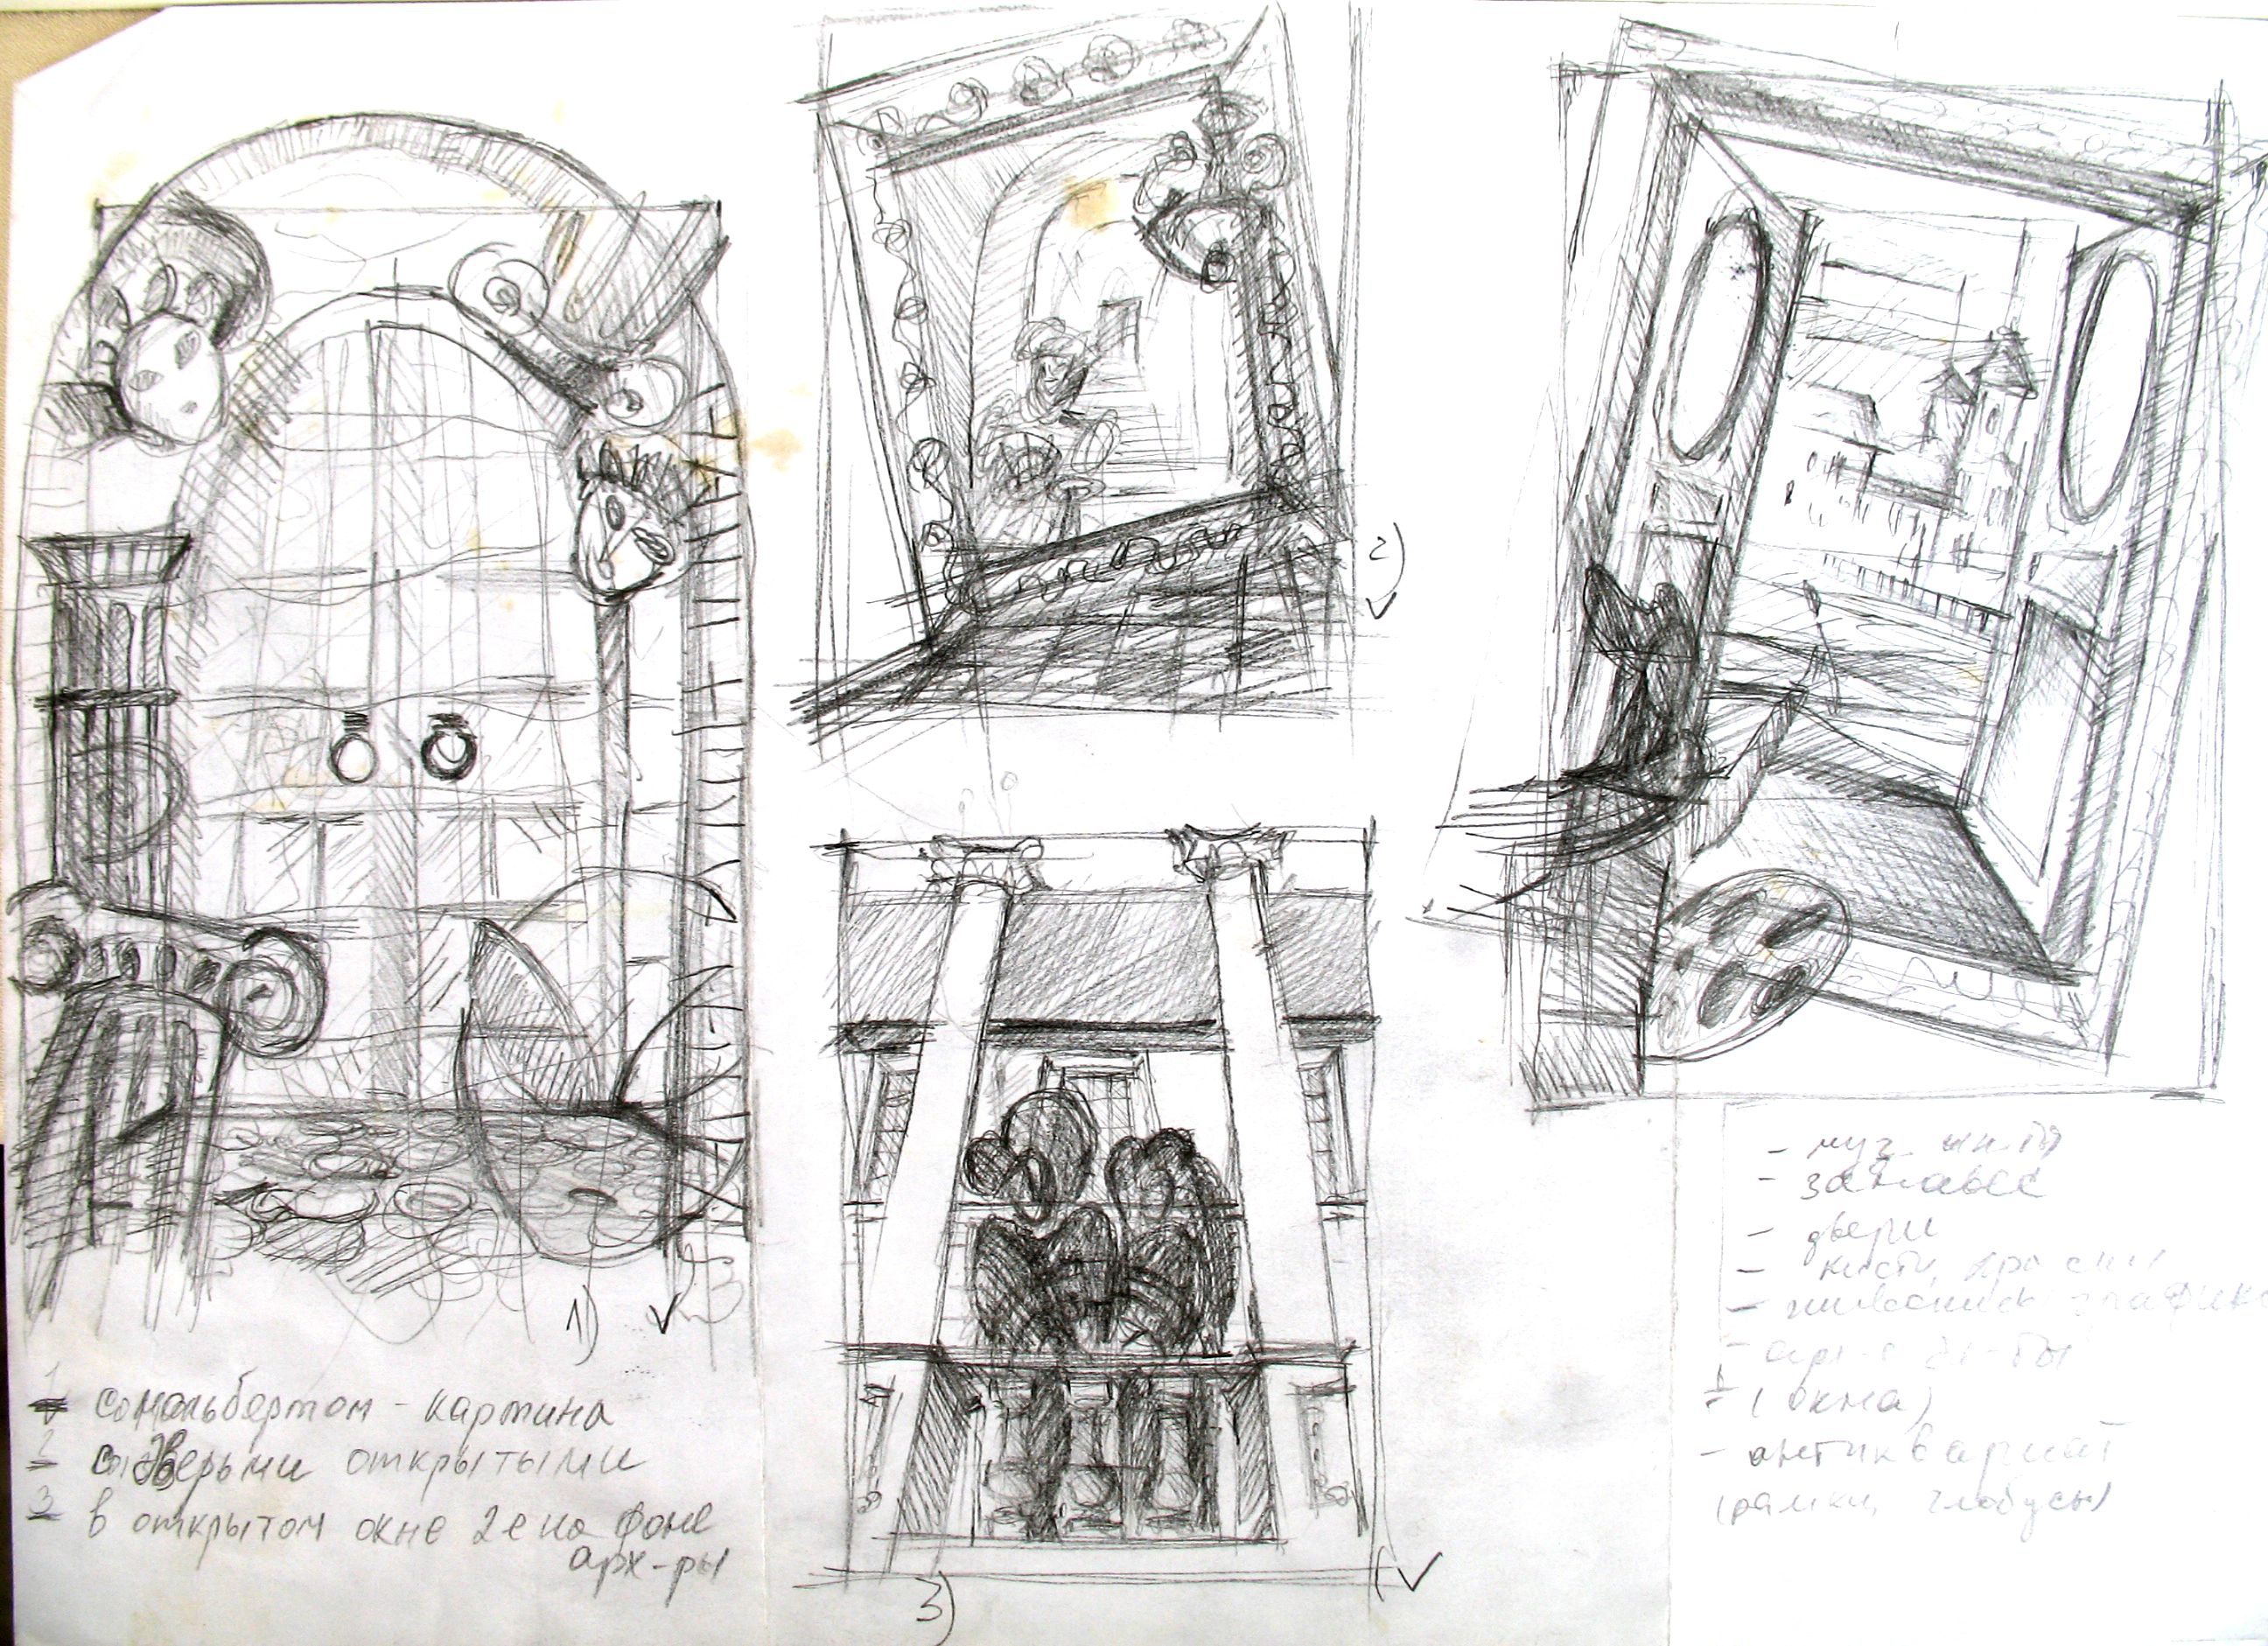 small resolution of sketches for art collages for puppet theater sketches sketching pencil painted drawing 3handdrawing theater